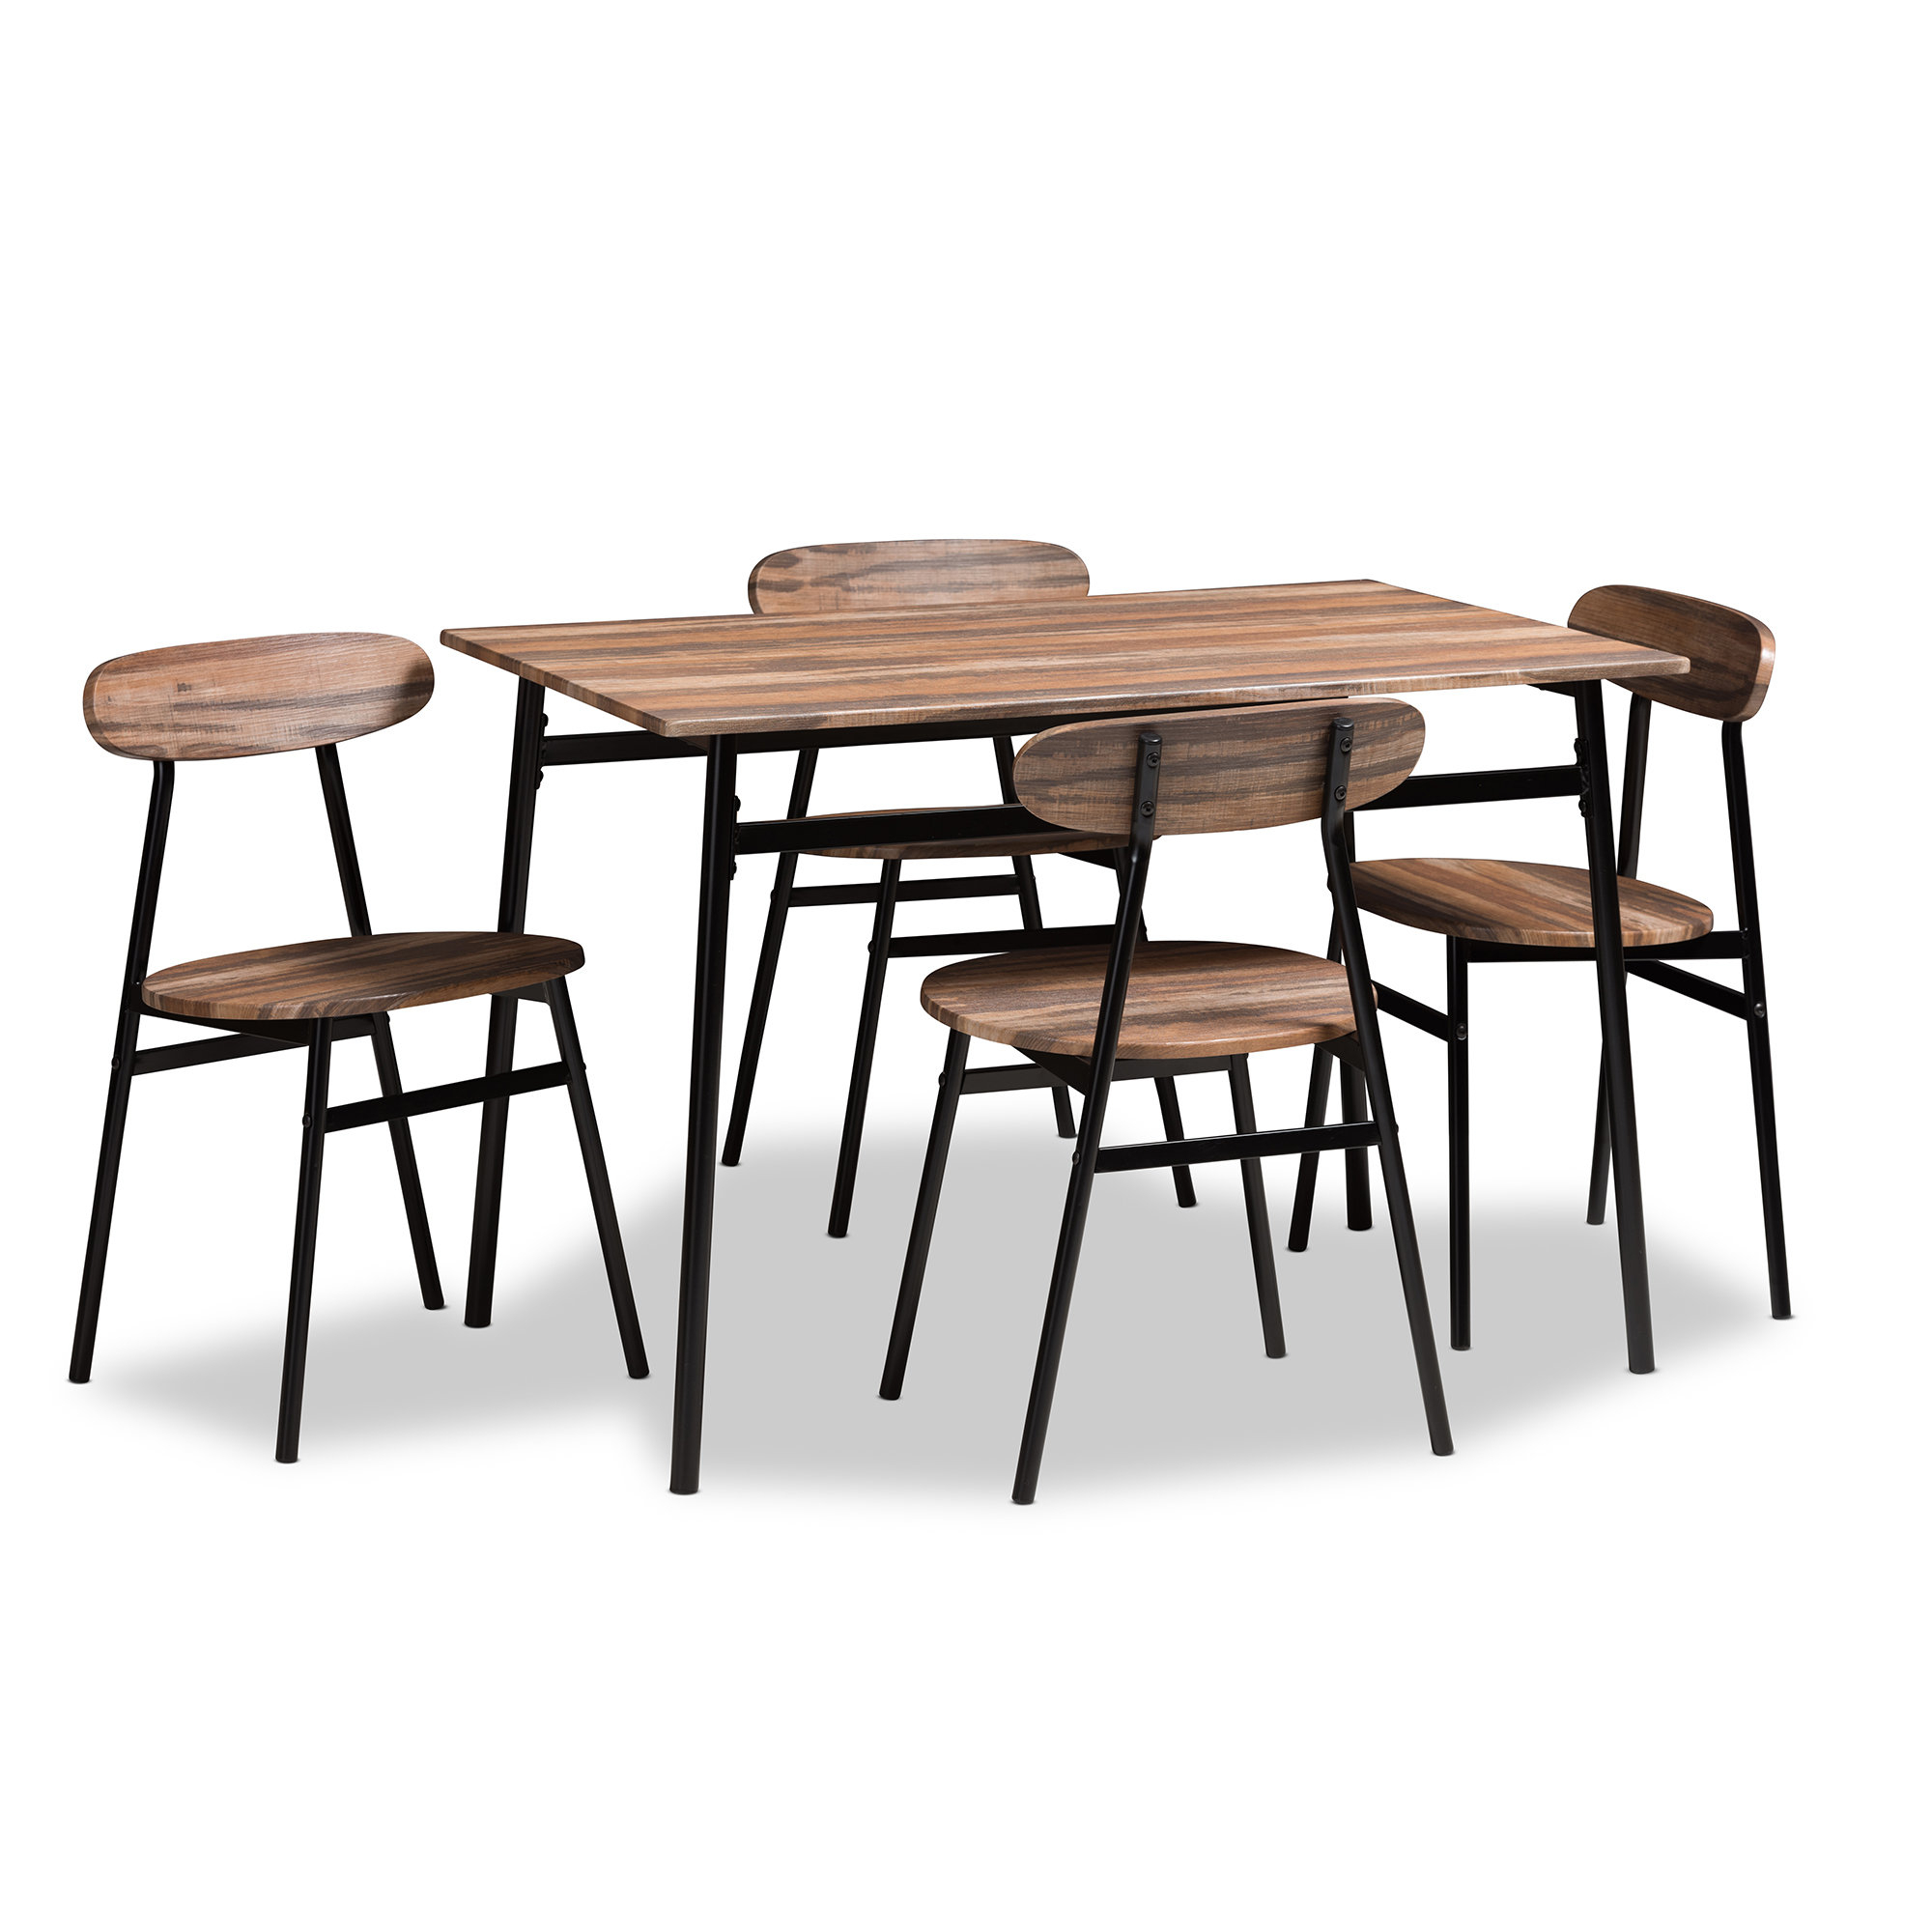 Wayfair Intended For Most Recent Tejeda 5 Piece Dining Sets (View 3 of 25)